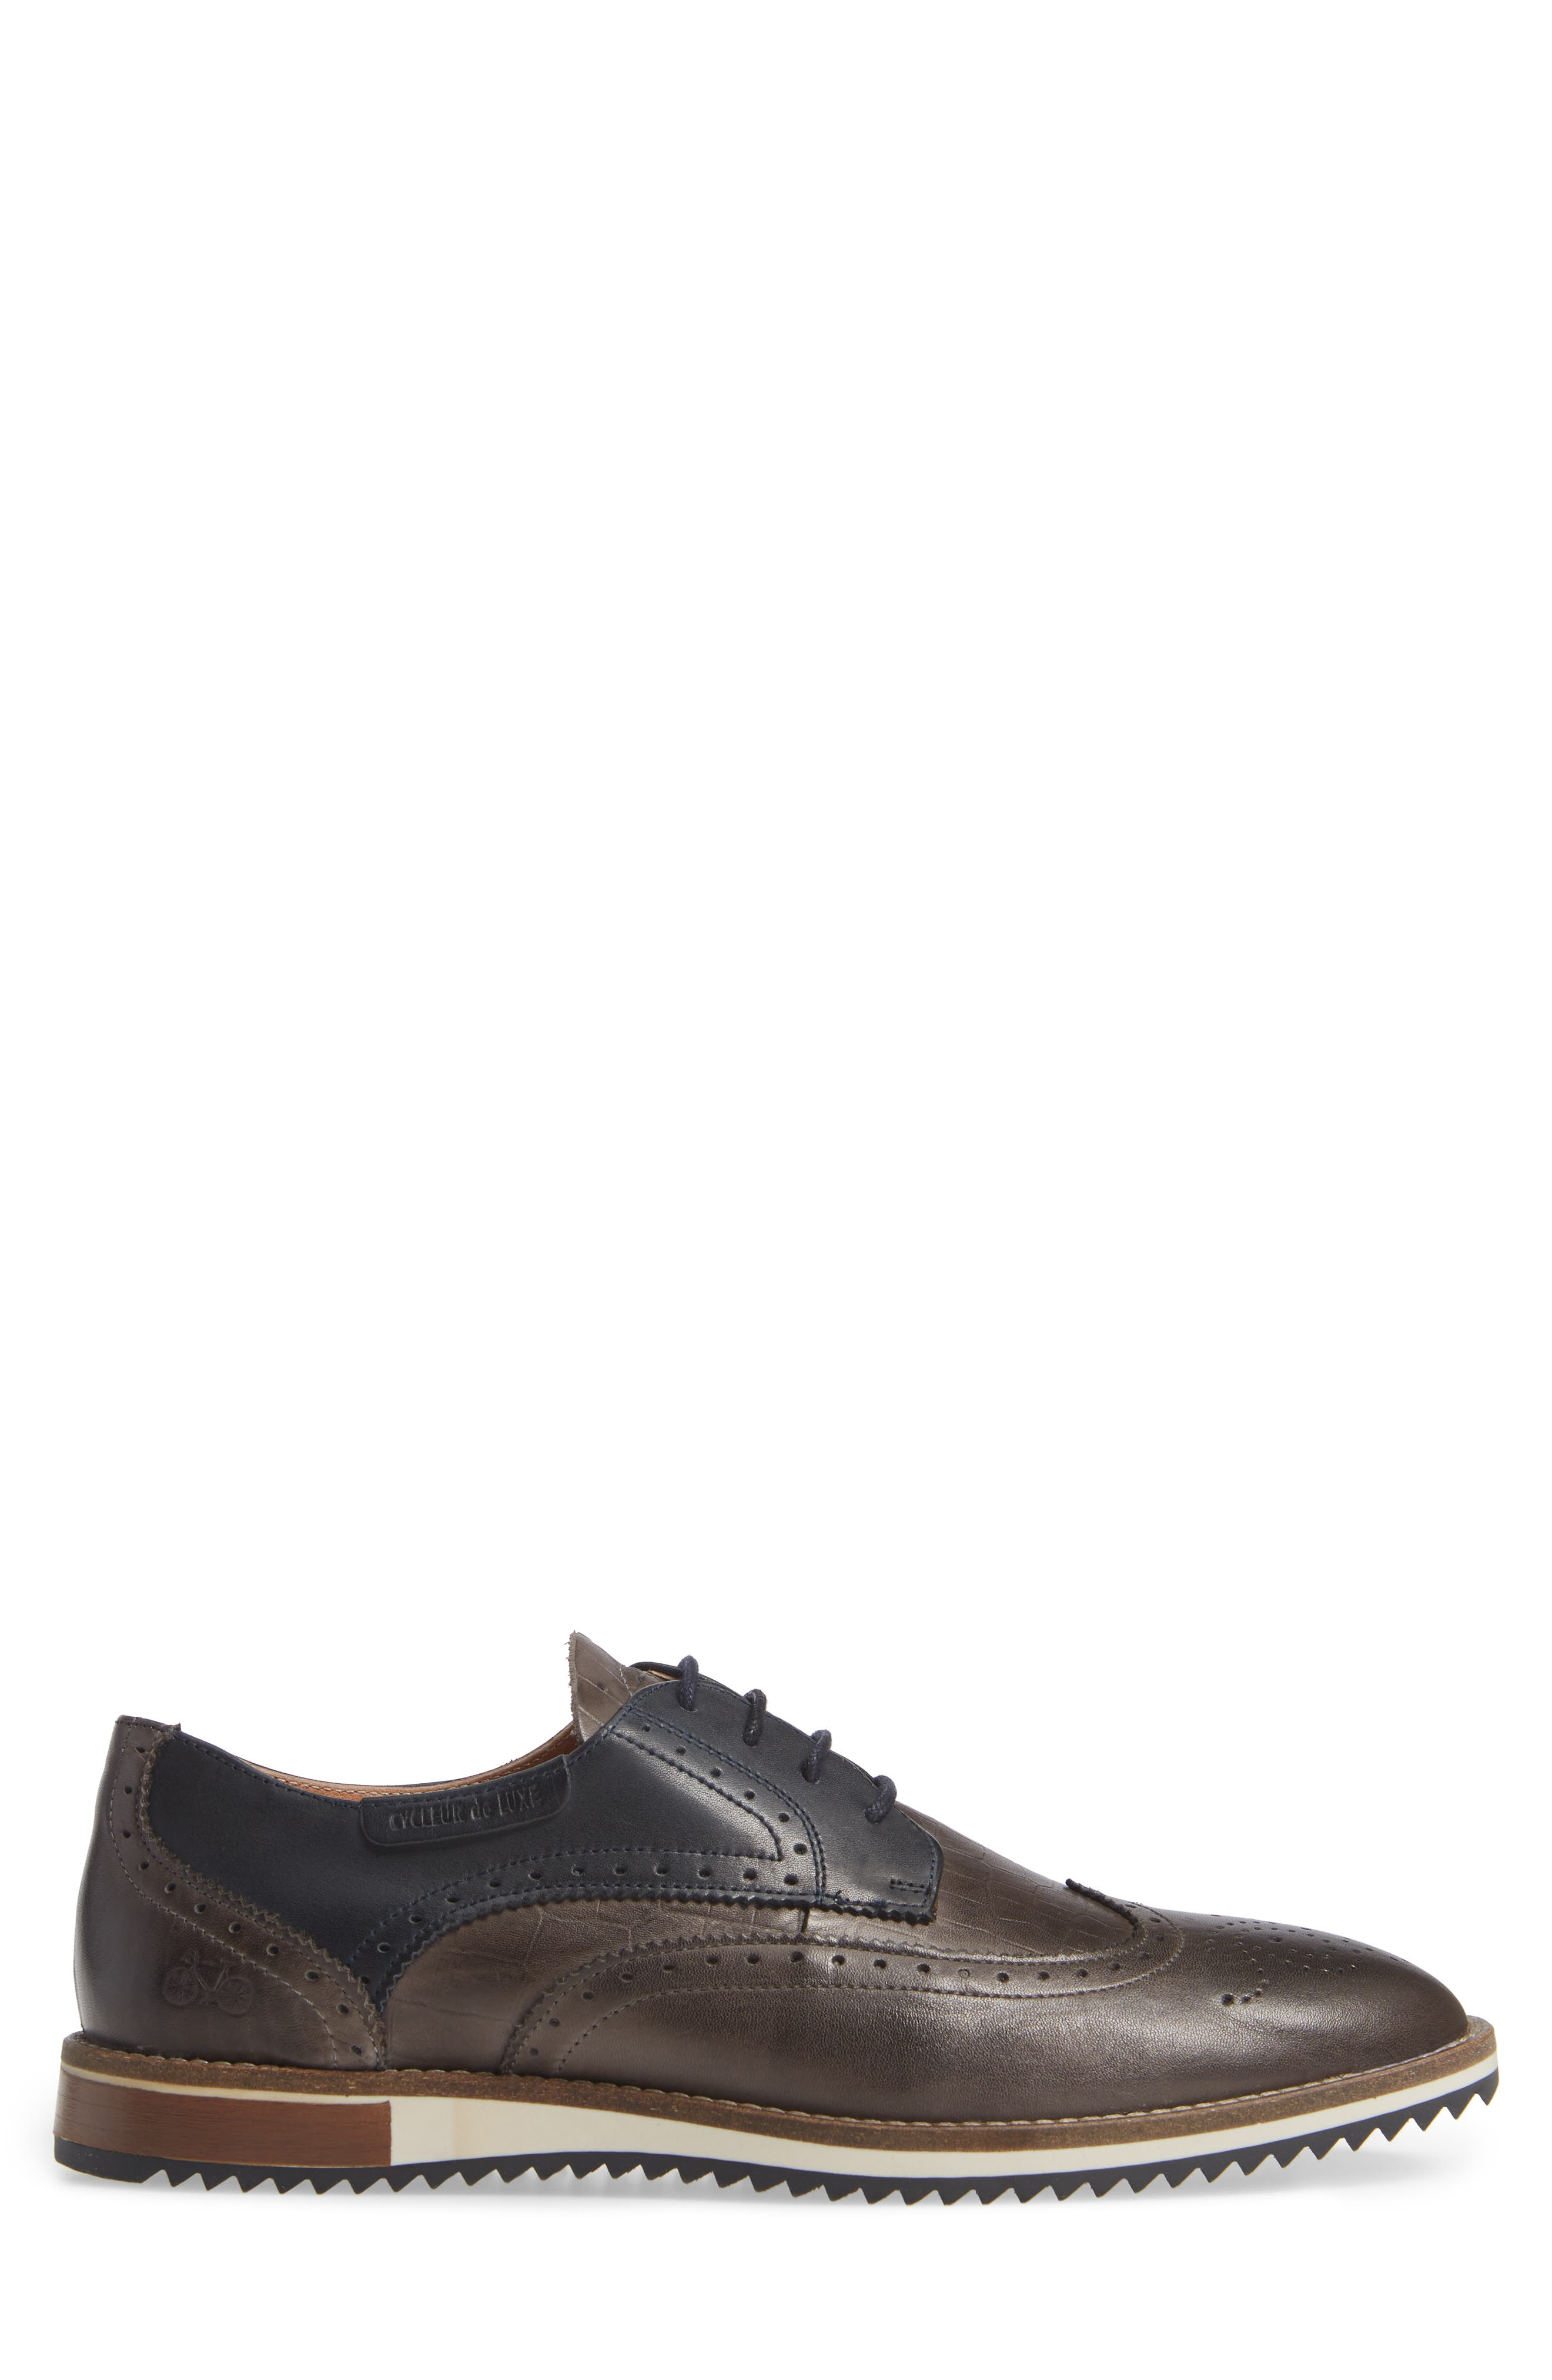 Pulsano Textured Wingtip,                             Alternate thumbnail 3, color,                             ANTHRACITE